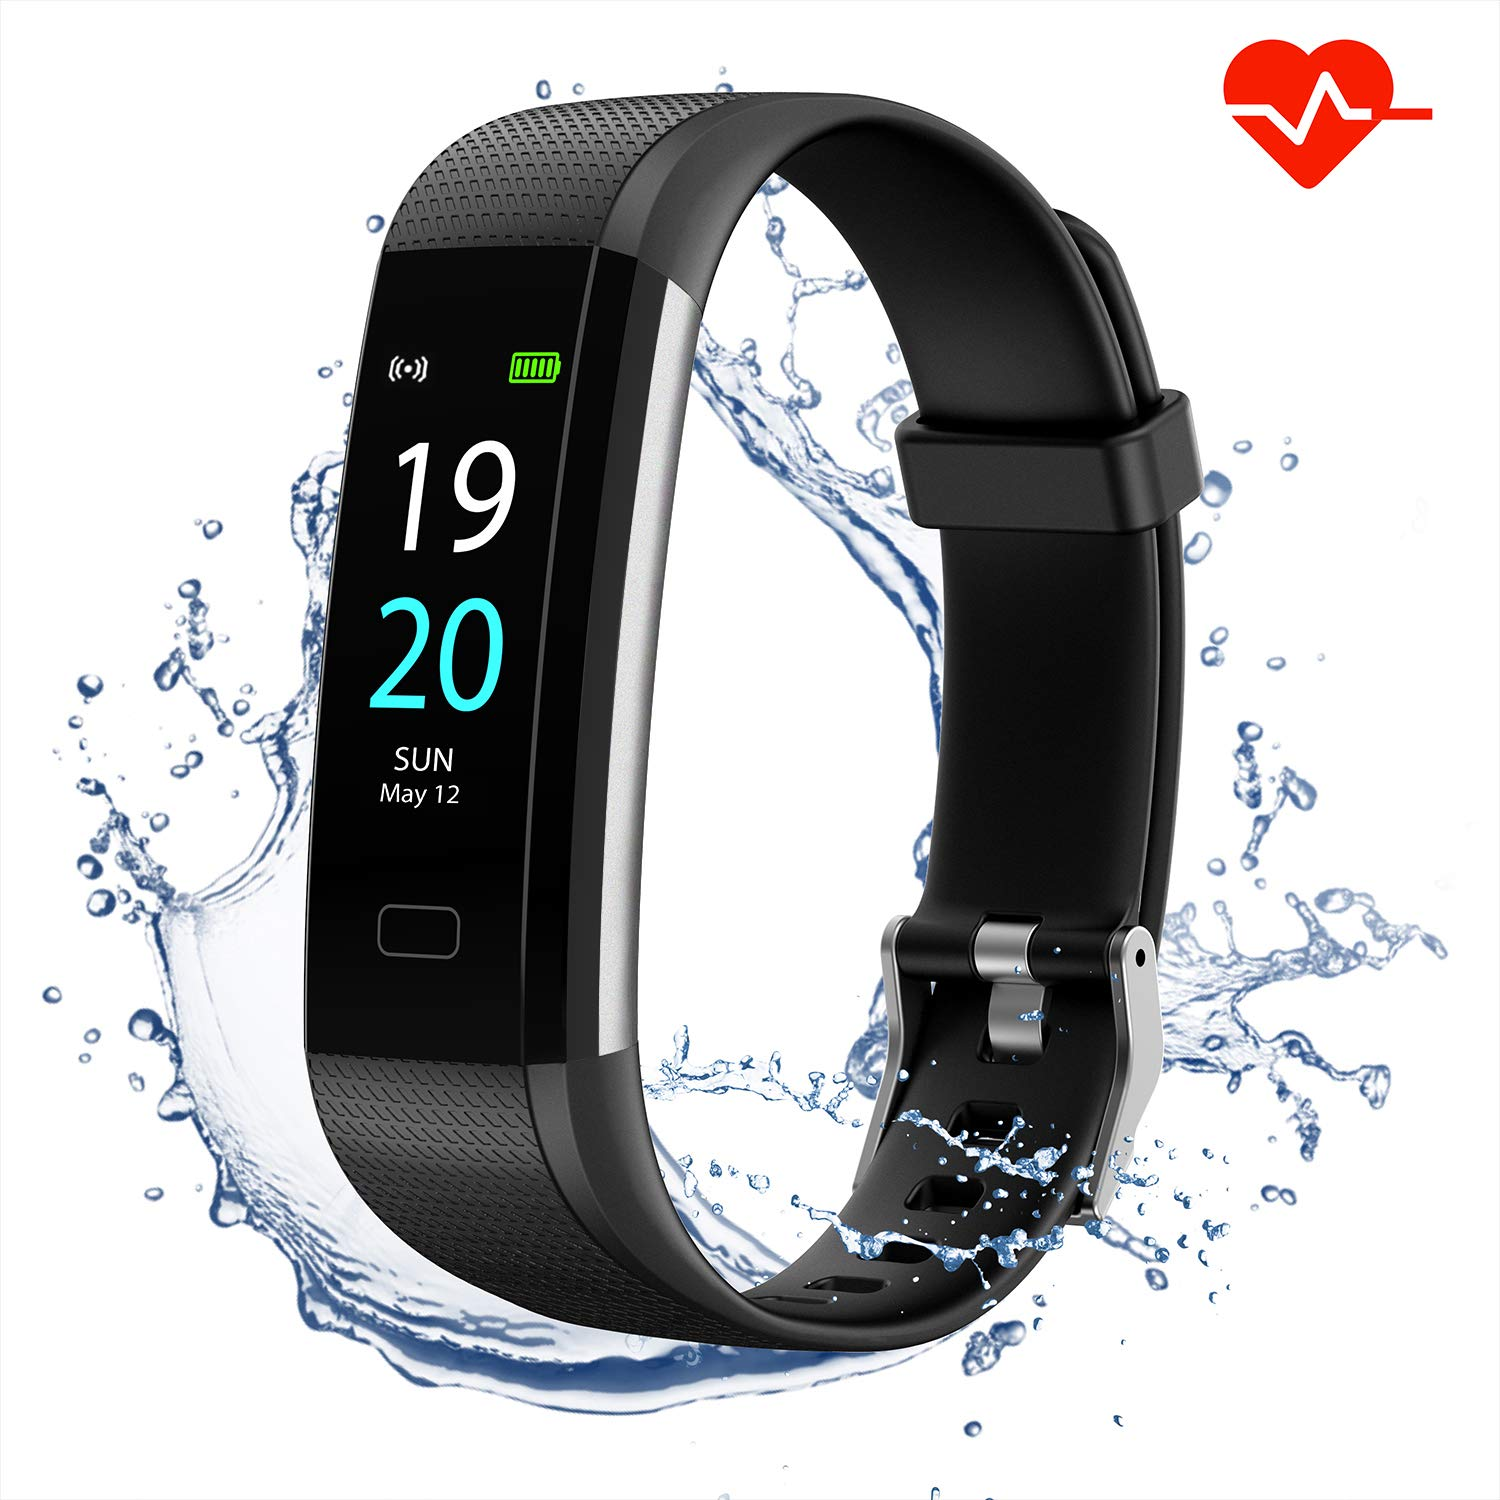 Akasma Fitness Tracker HR, S5 Activity Tracker Watch with Heart Rate Monitor, Pedometer IP68 Waterproof Sleep Monitor Step Counter for Women Men (Black) by Akasma